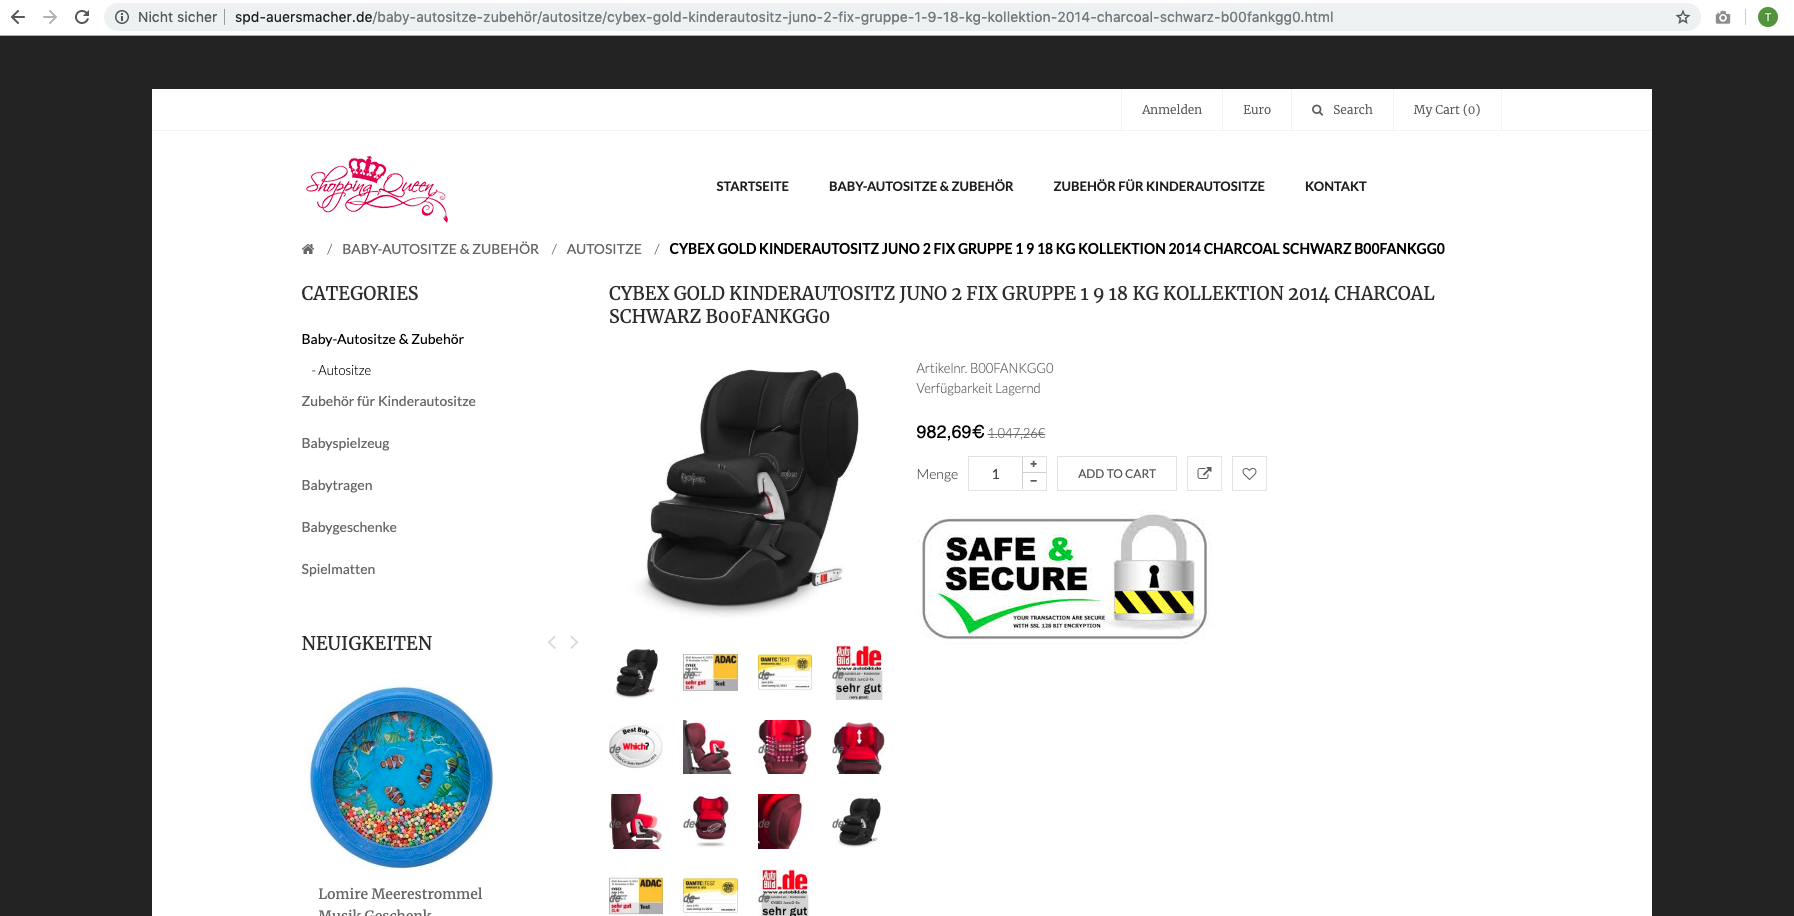 Expired Domains Fake Shops Fraud SPD Auersmacher Produktdetailseite